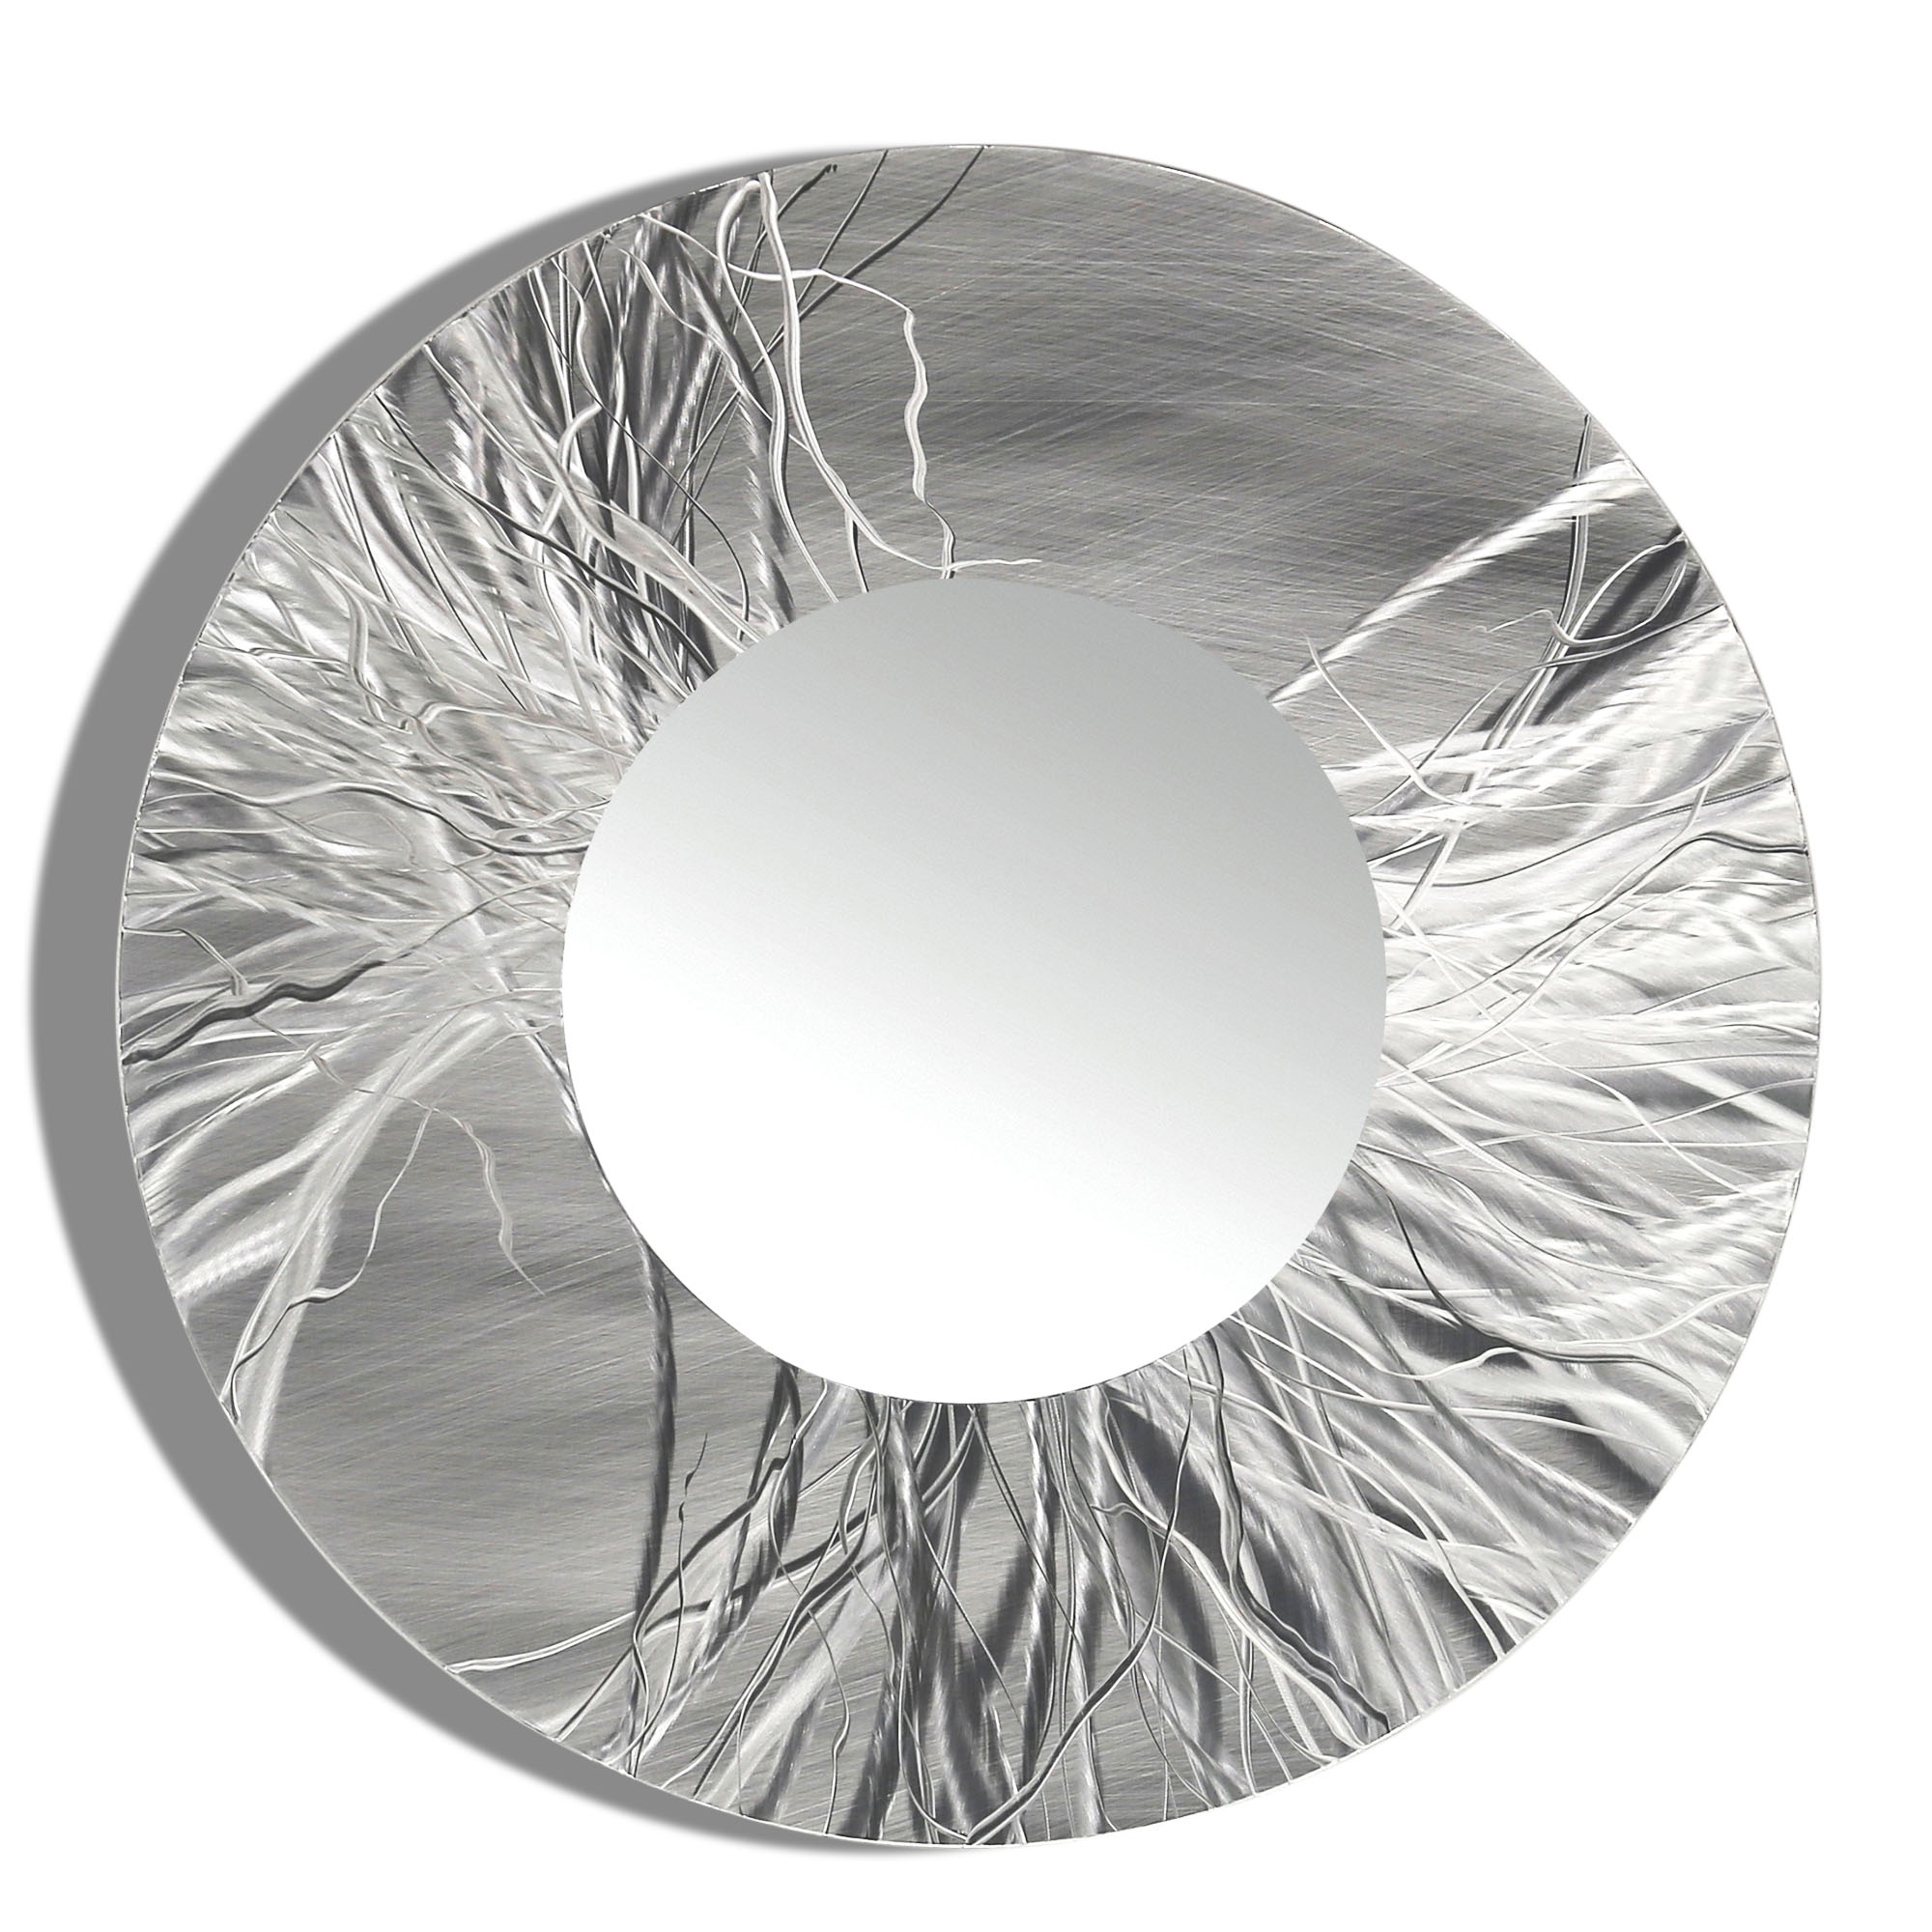 Mirror 104 Round Silver Contemporary Metal Wall Art Round Mirror Pertaining To Contemporary Round Mirrors (Image 10 of 15)